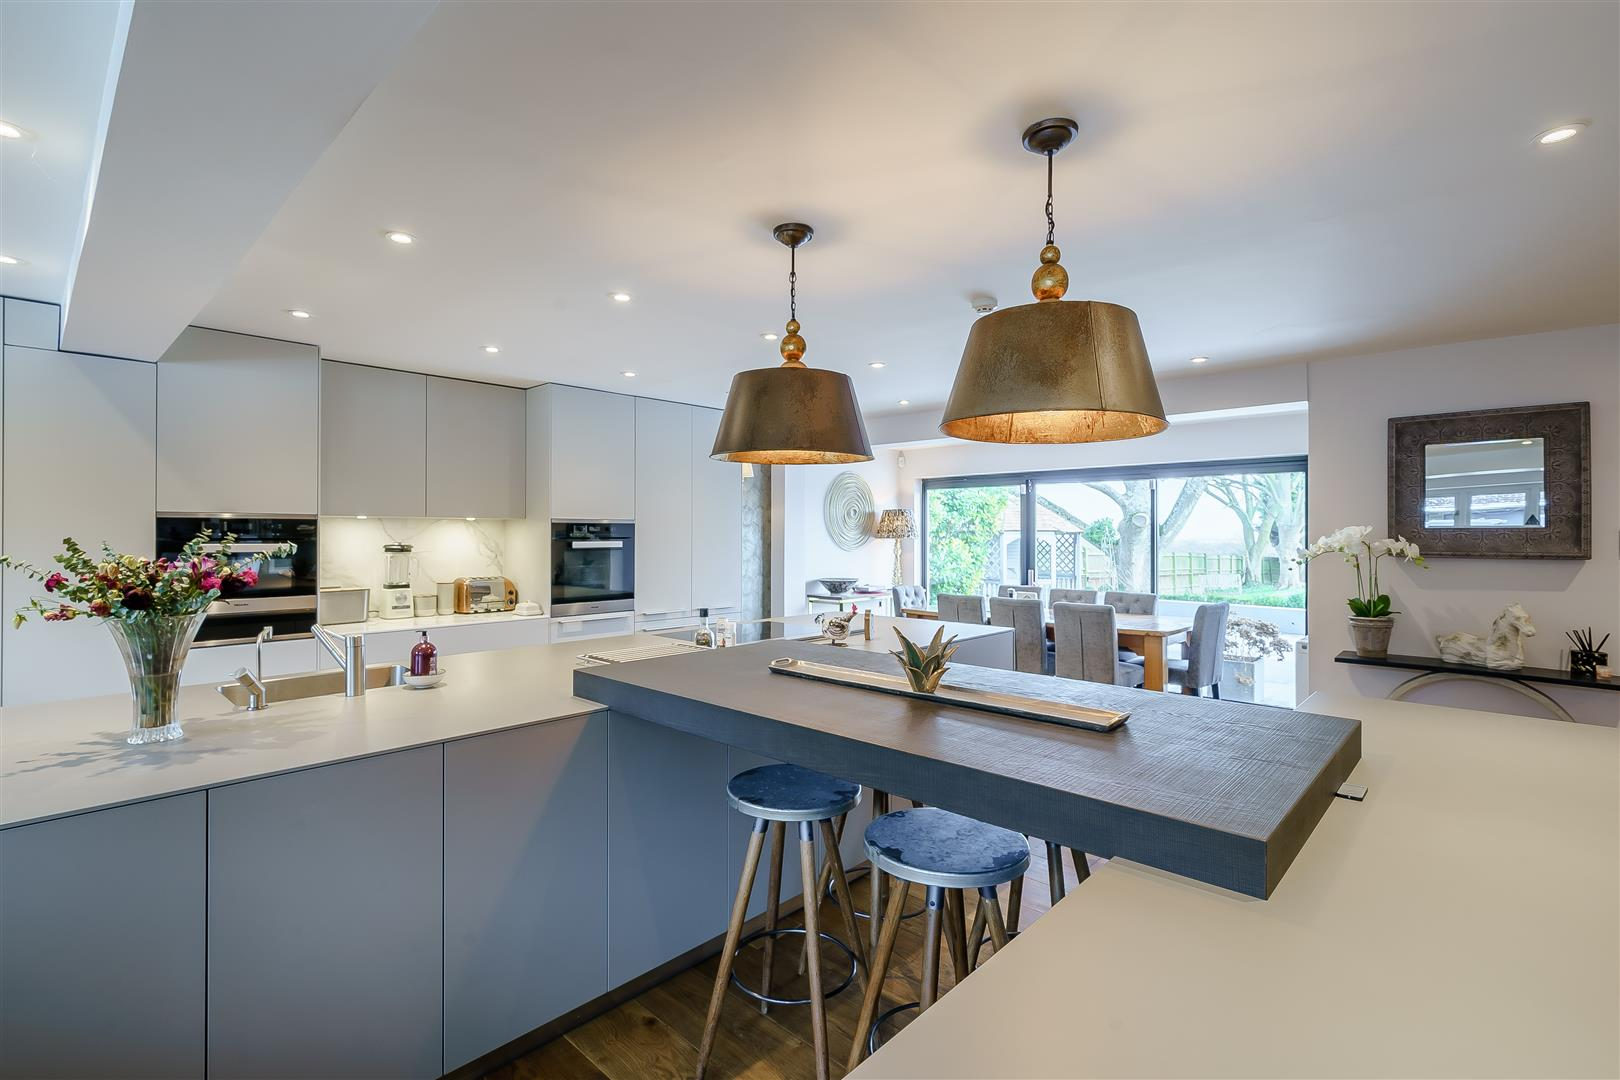 Rowstock Manor - Gallery Image 11 - Kitchen